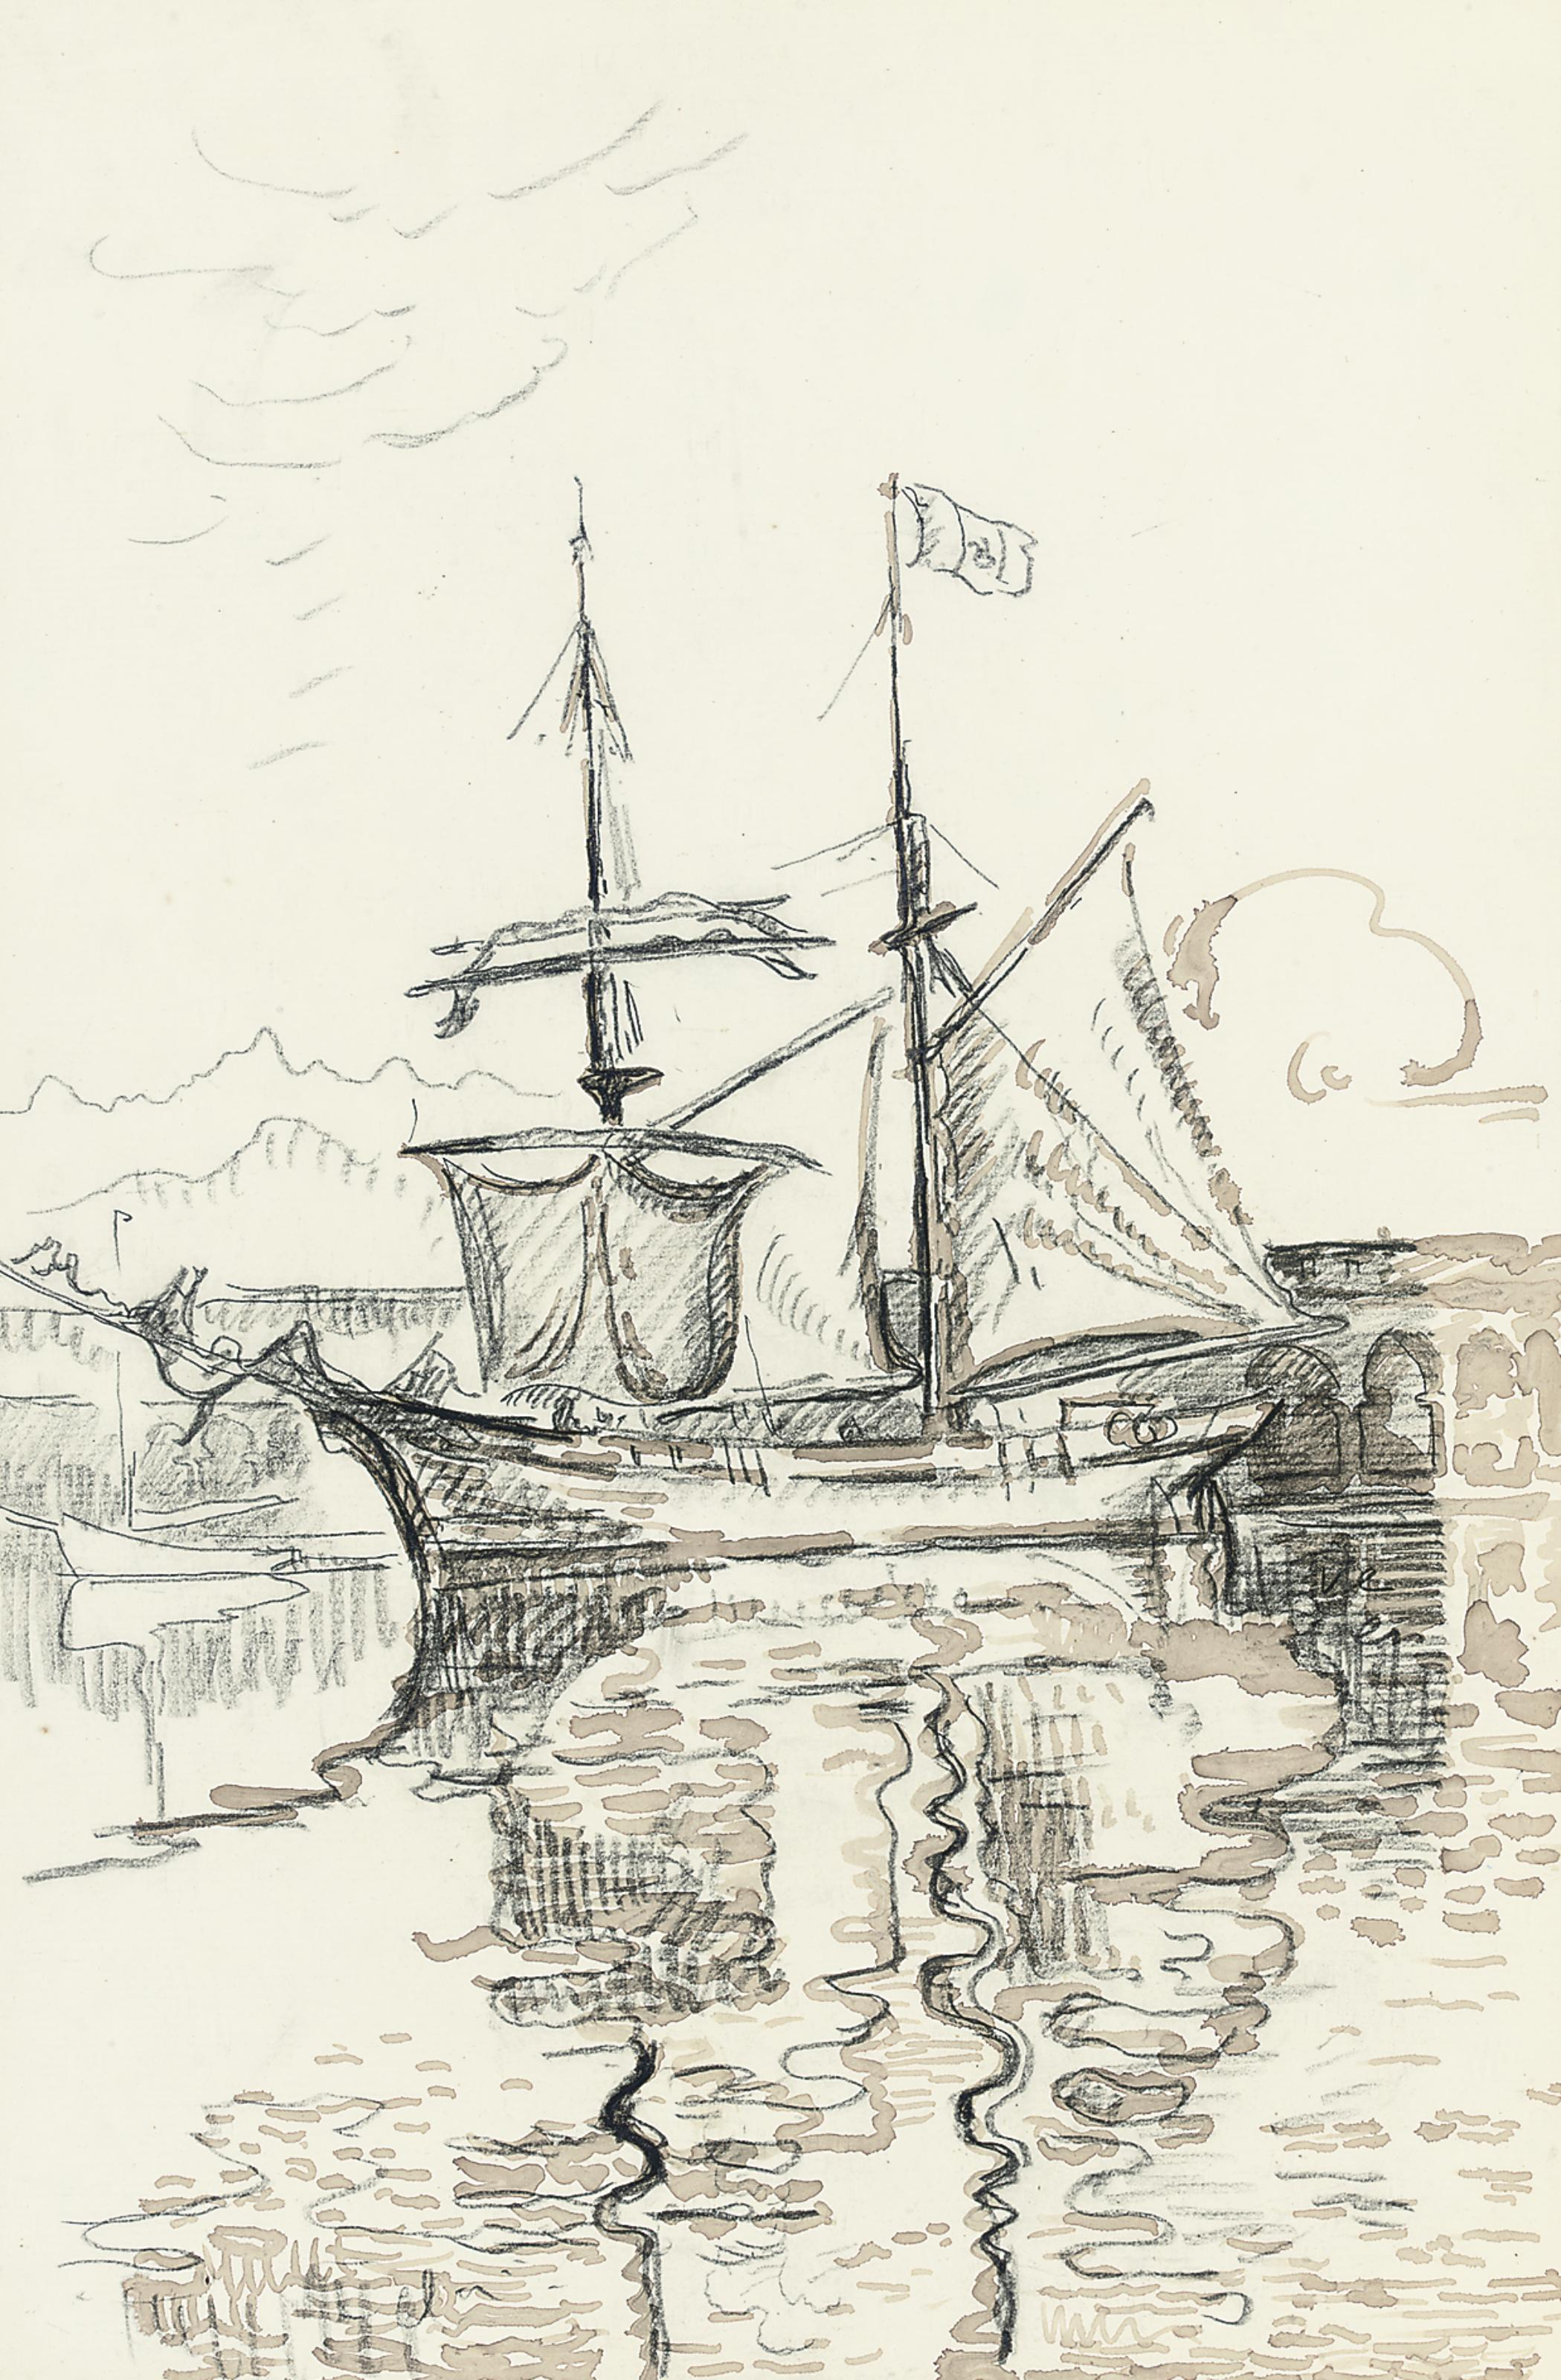 https://www.christies.com/img/LotImages/2012/CSK/2012_CSK_04420_0246_000(paul_signac_sailing_boats_in_harbour).jpg